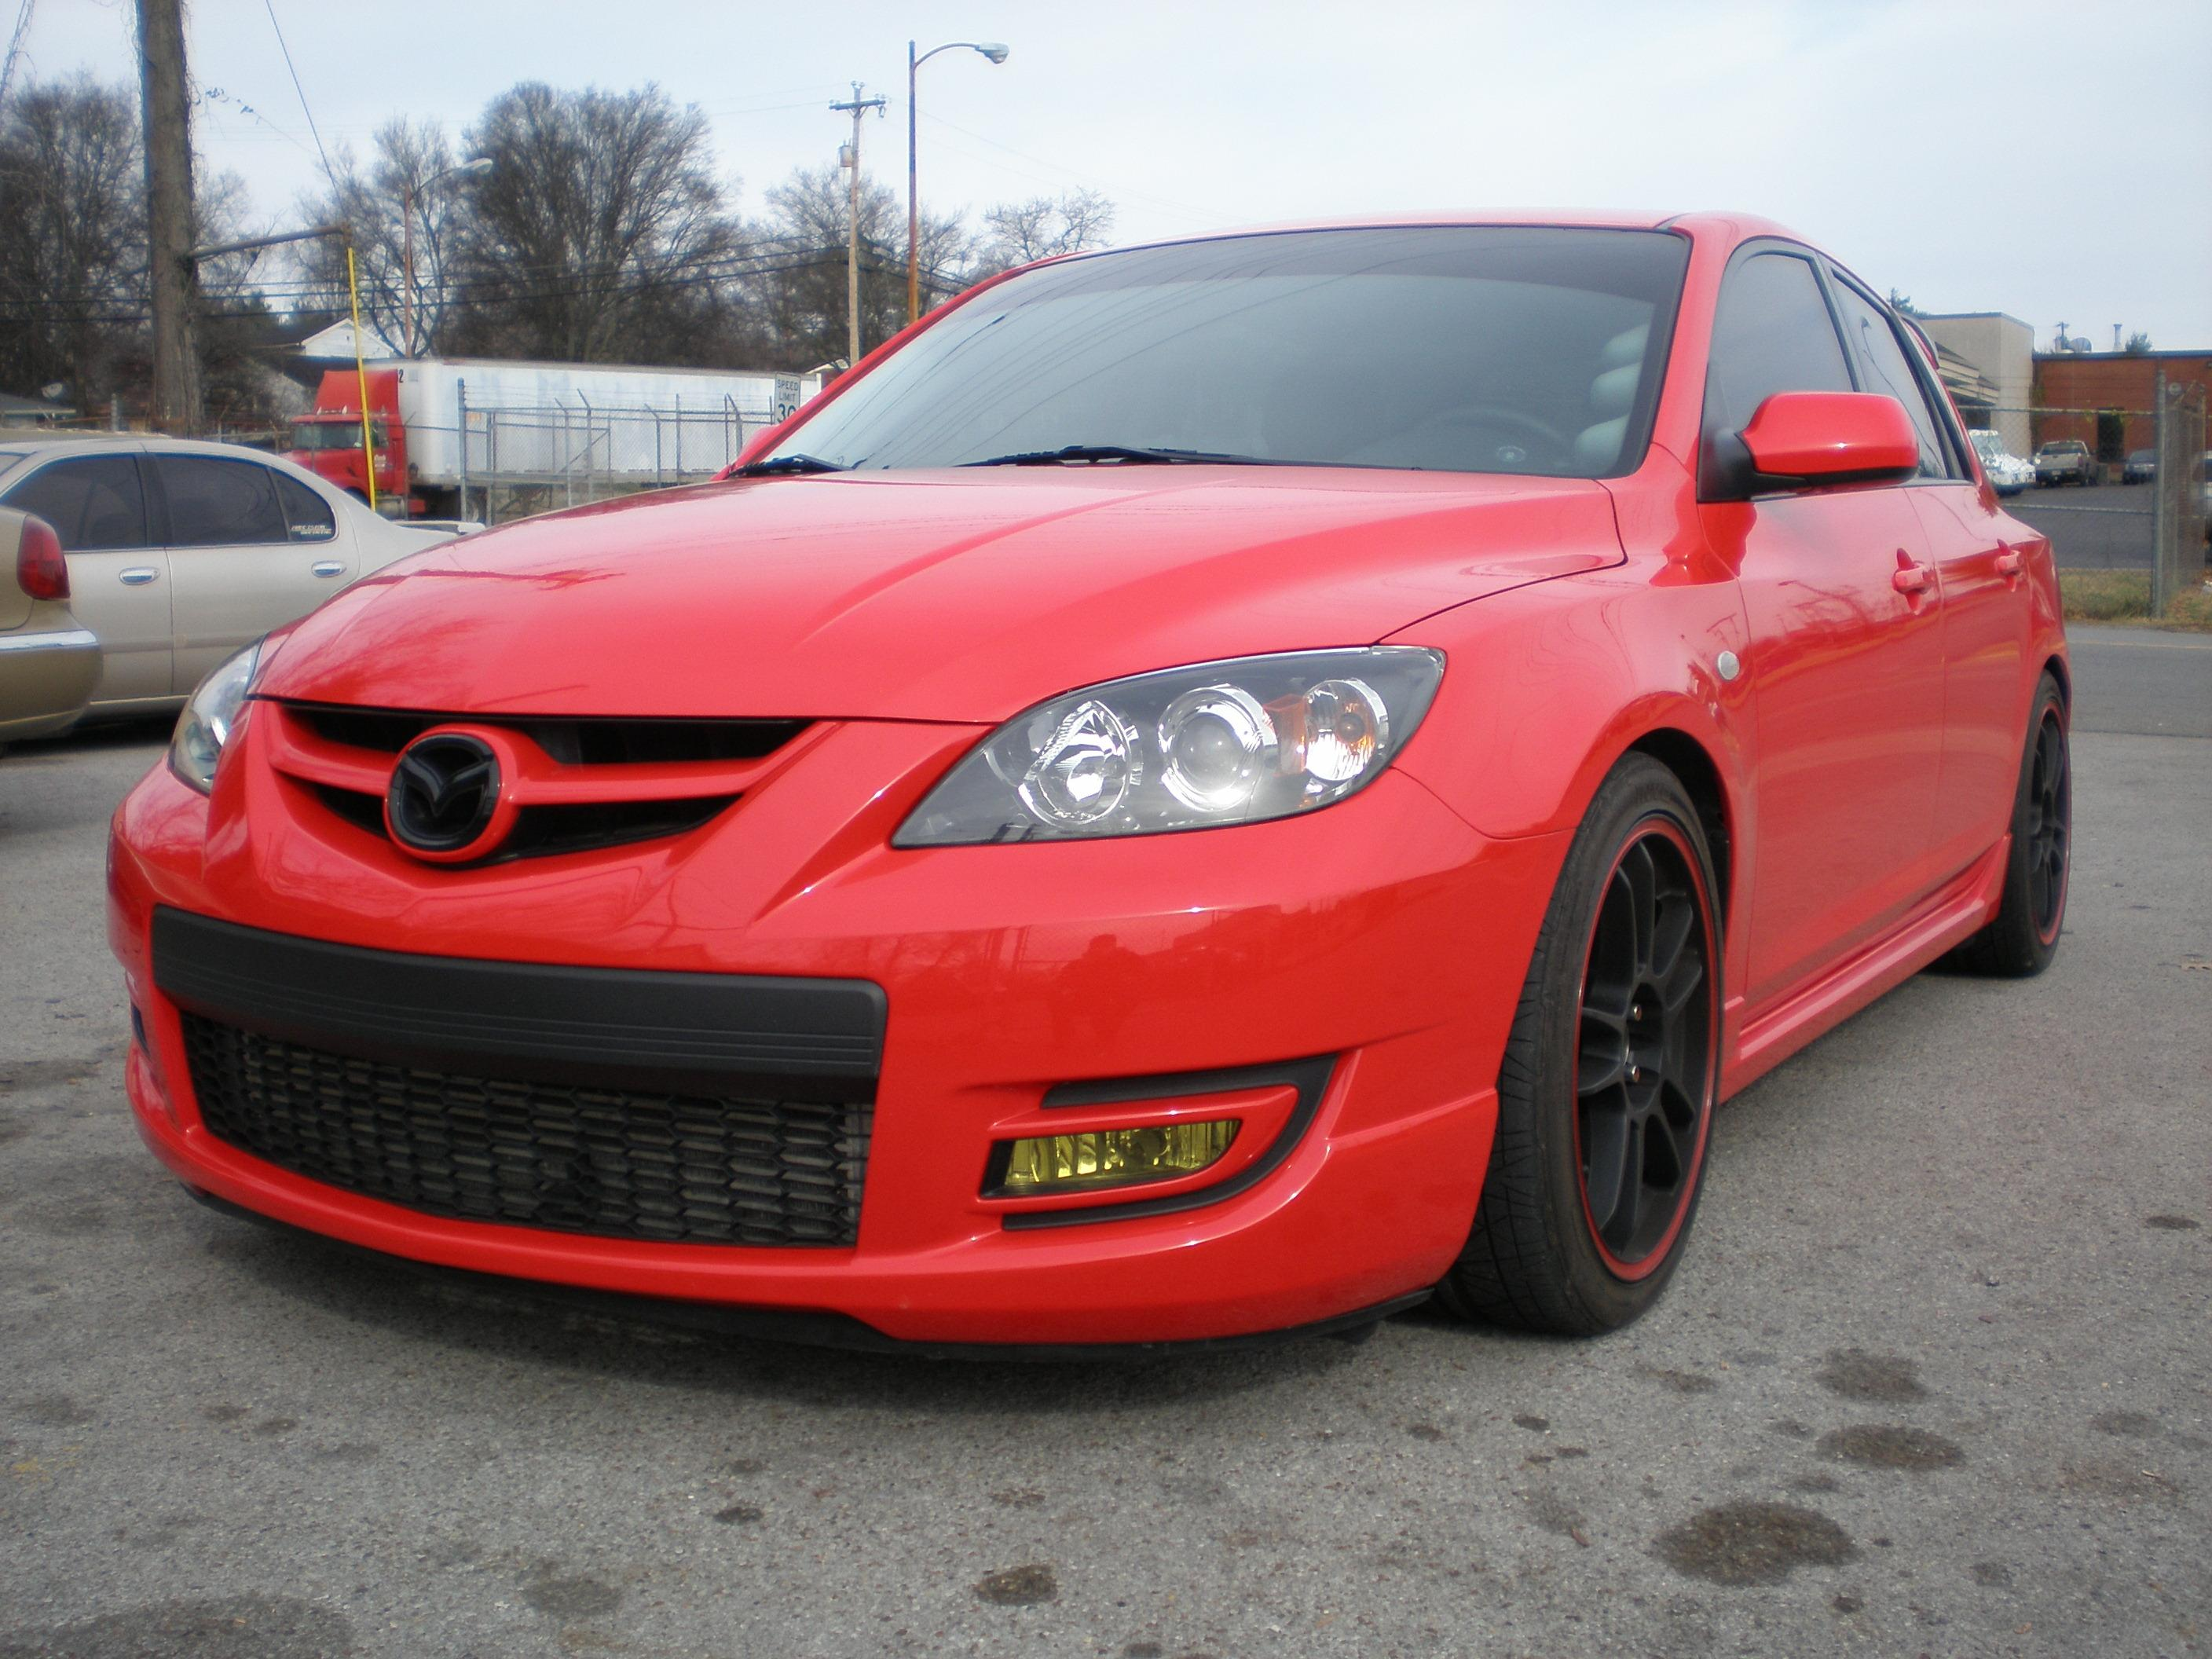 kageryu311 2007 mazda mazda3mazdaspeed3 grand touring hatchback 4d specs photos modification. Black Bedroom Furniture Sets. Home Design Ideas